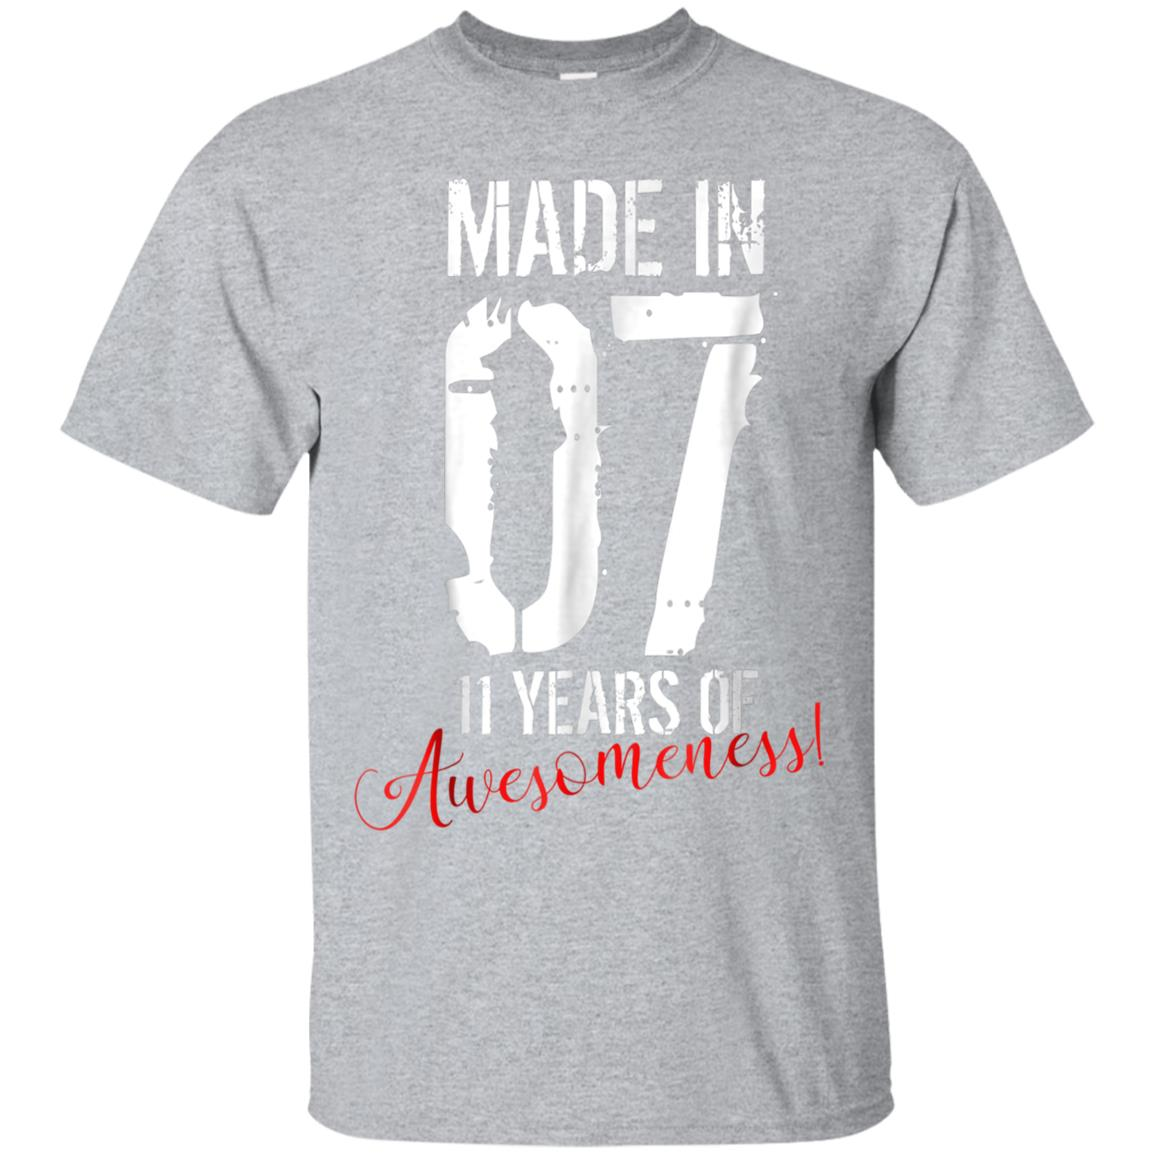 Awesome 11 year old birthday gift shirt awesome 11th birthday gift - 99promocode  sc 1 st  99promocode & Awesome 11 year old birthday gift shirt awesome 11th birthday gift ...